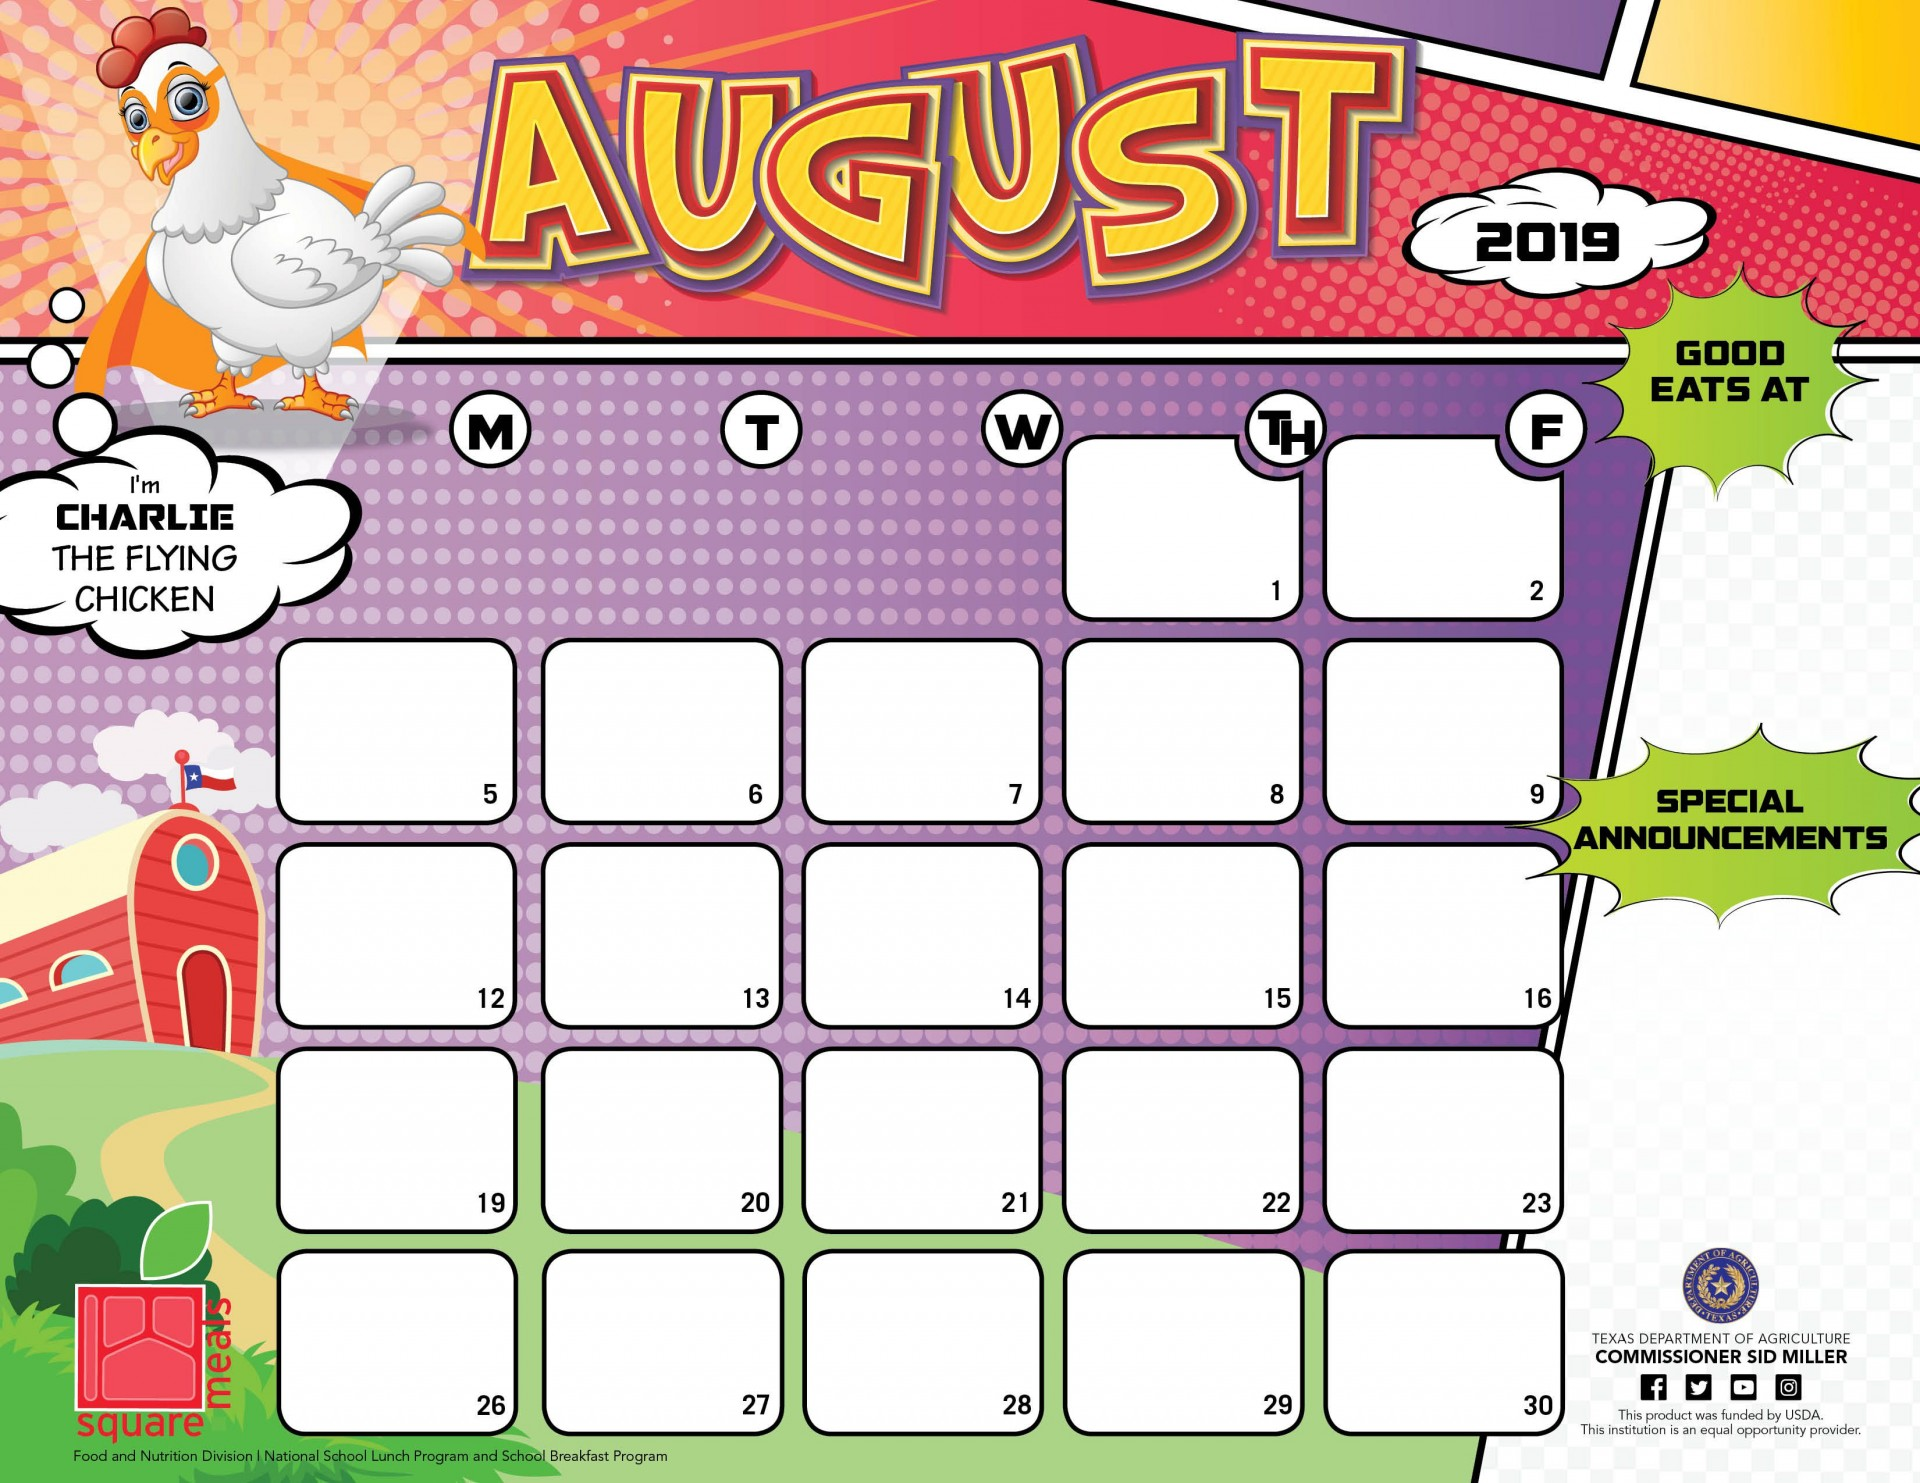 008 Exceptional School Lunch Menu Template High Def  Monthly Free Printable Blank1920